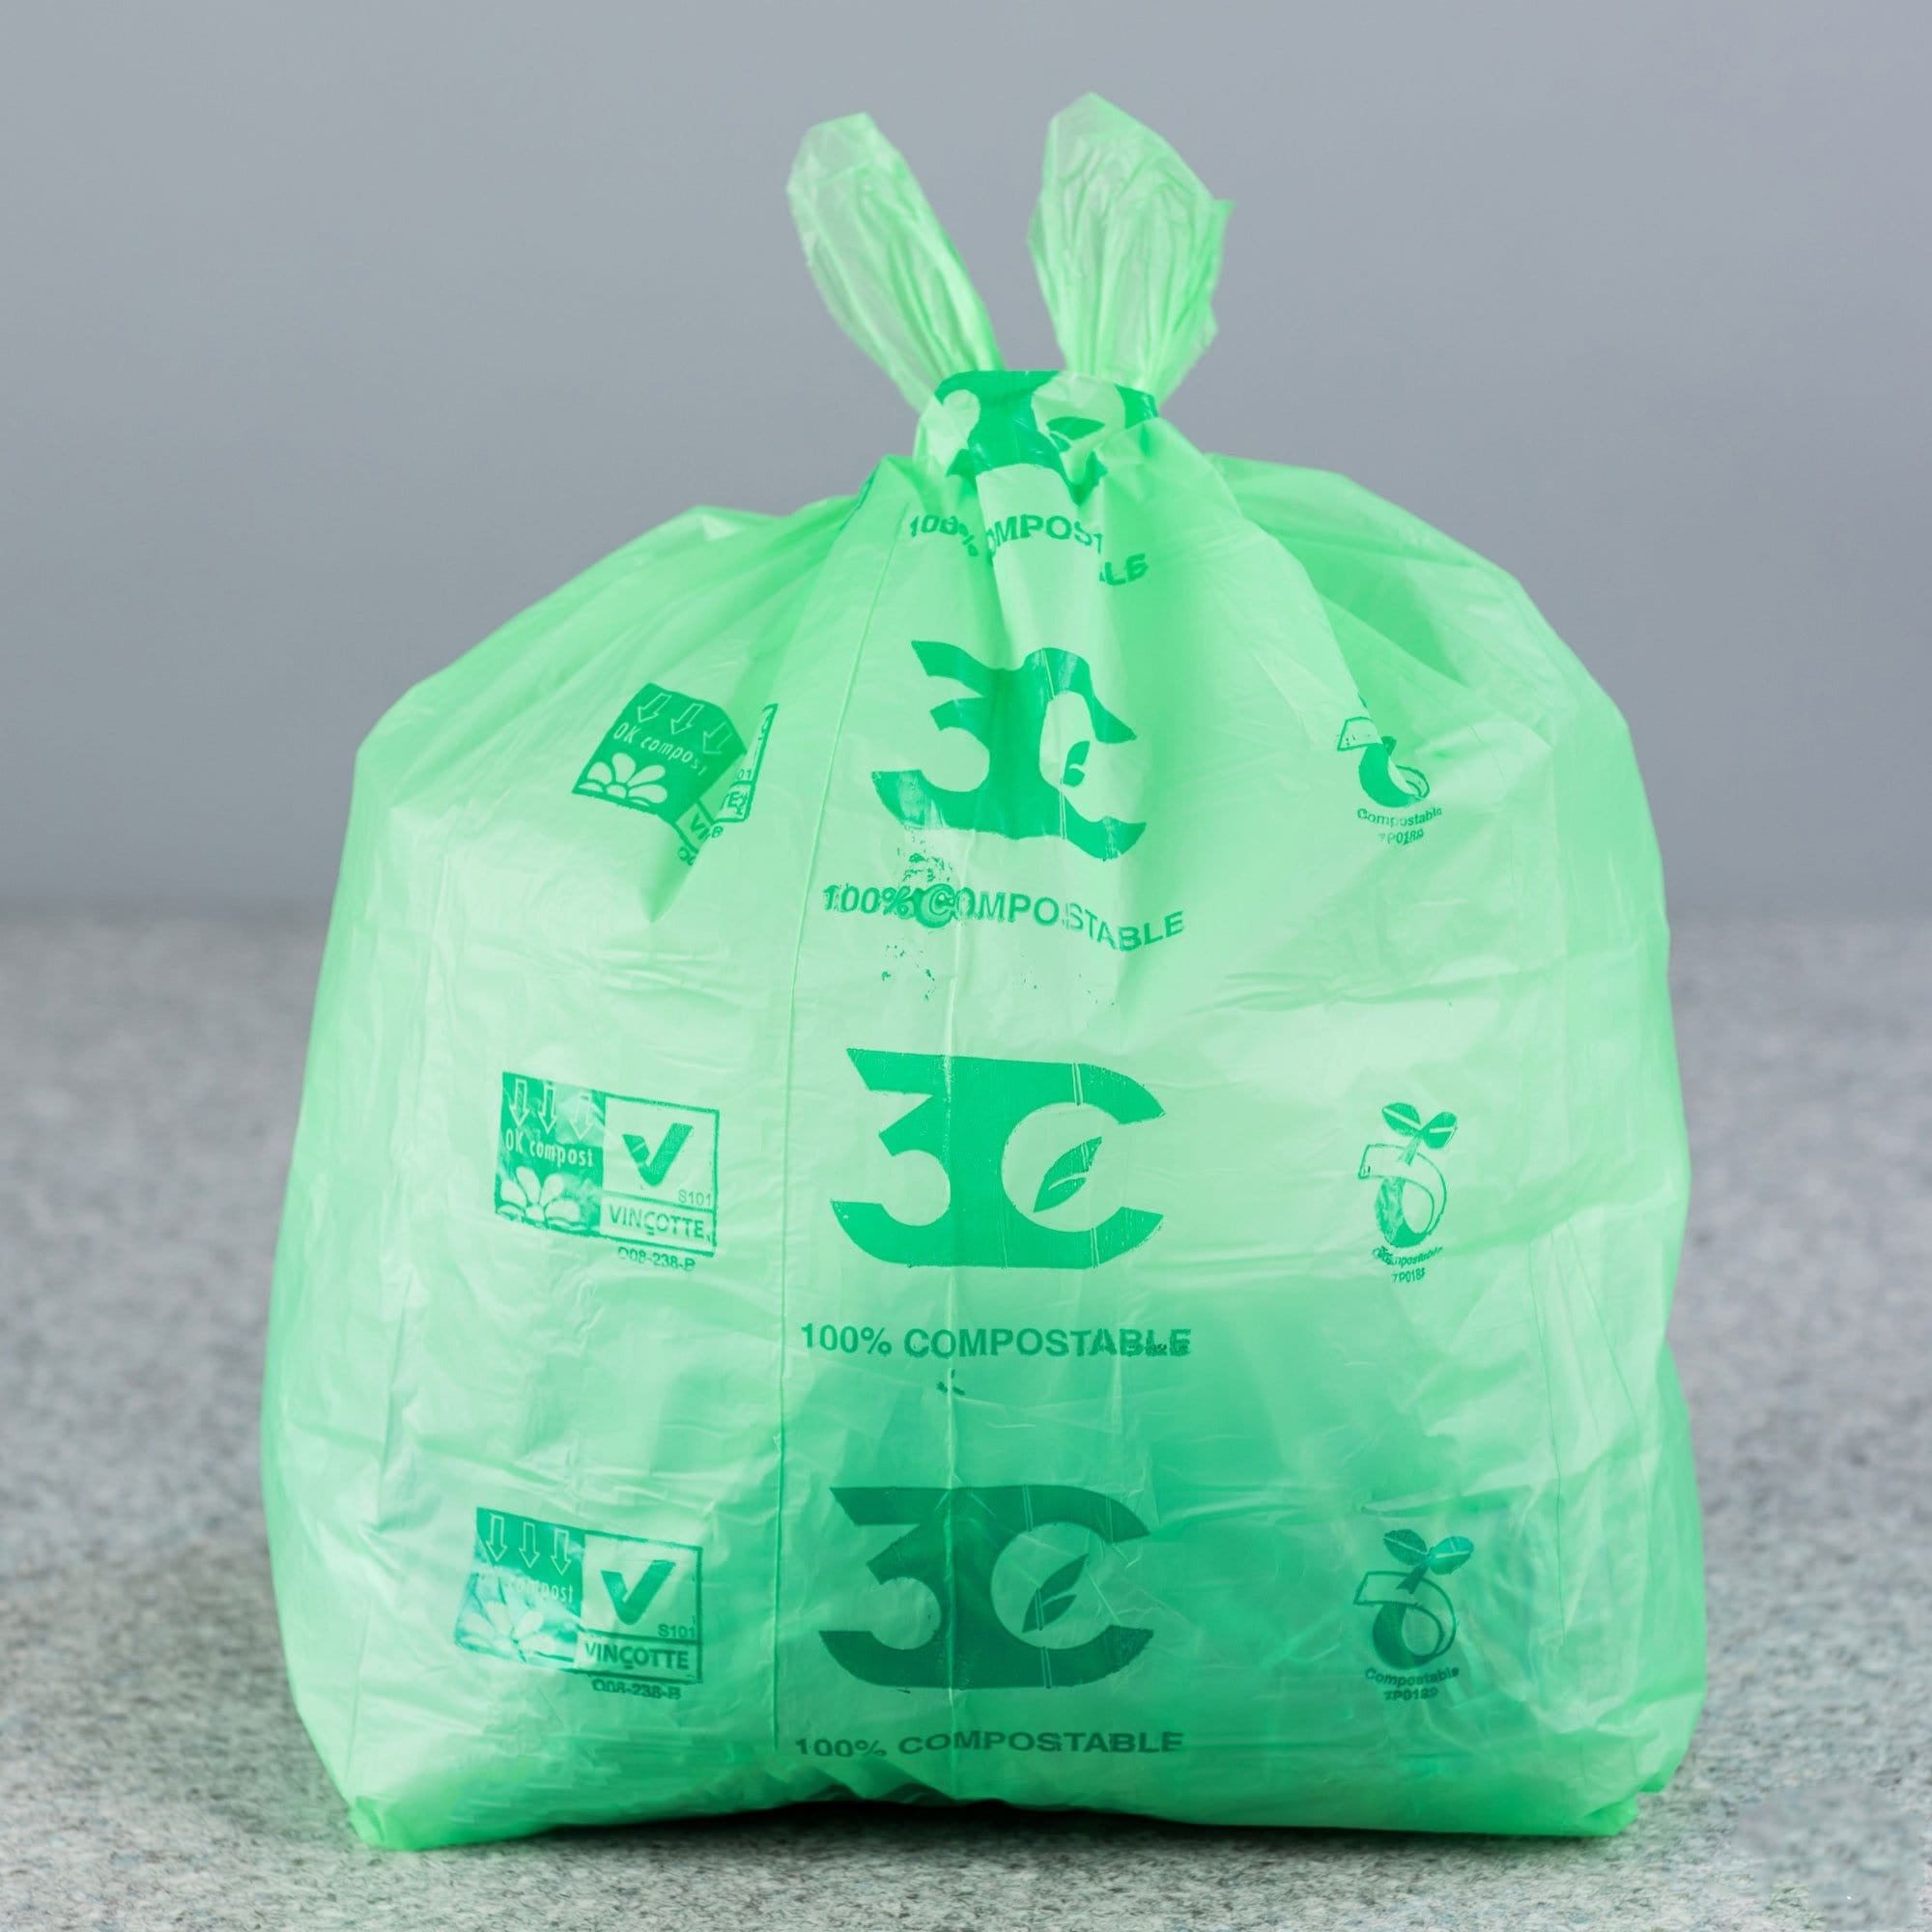 Bin Bags - Compostable - Evolution Packaging Products